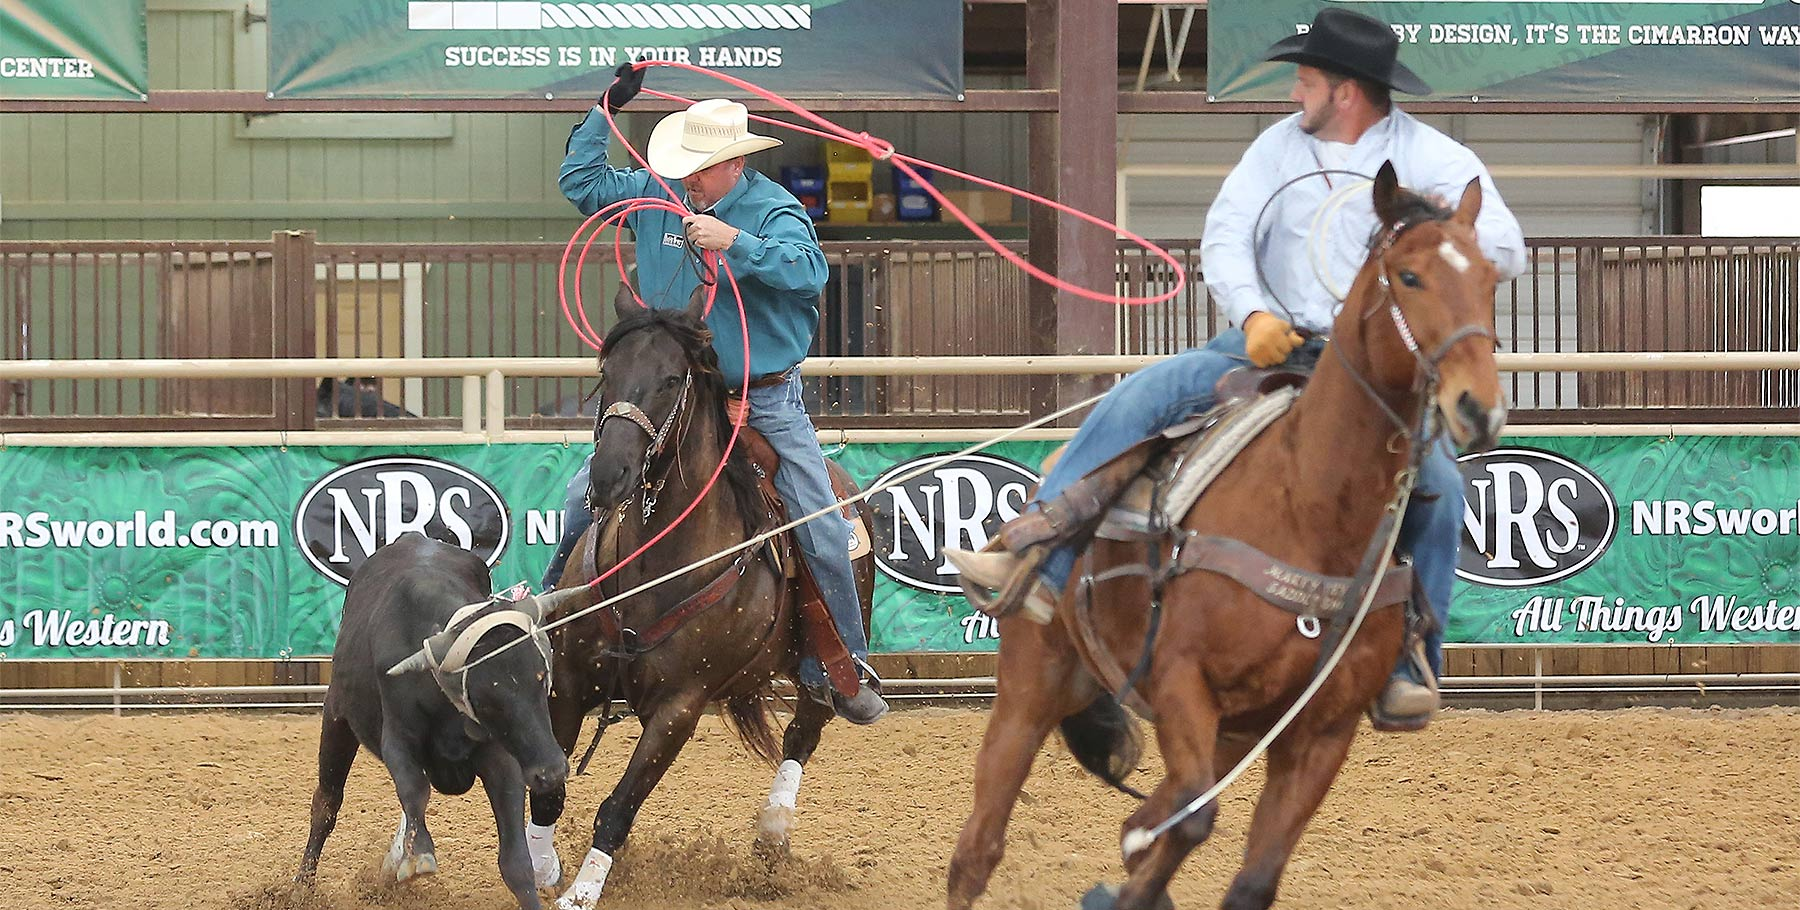 NRS - Shop Team Roping Supplies, Horse Tack, Western Wear